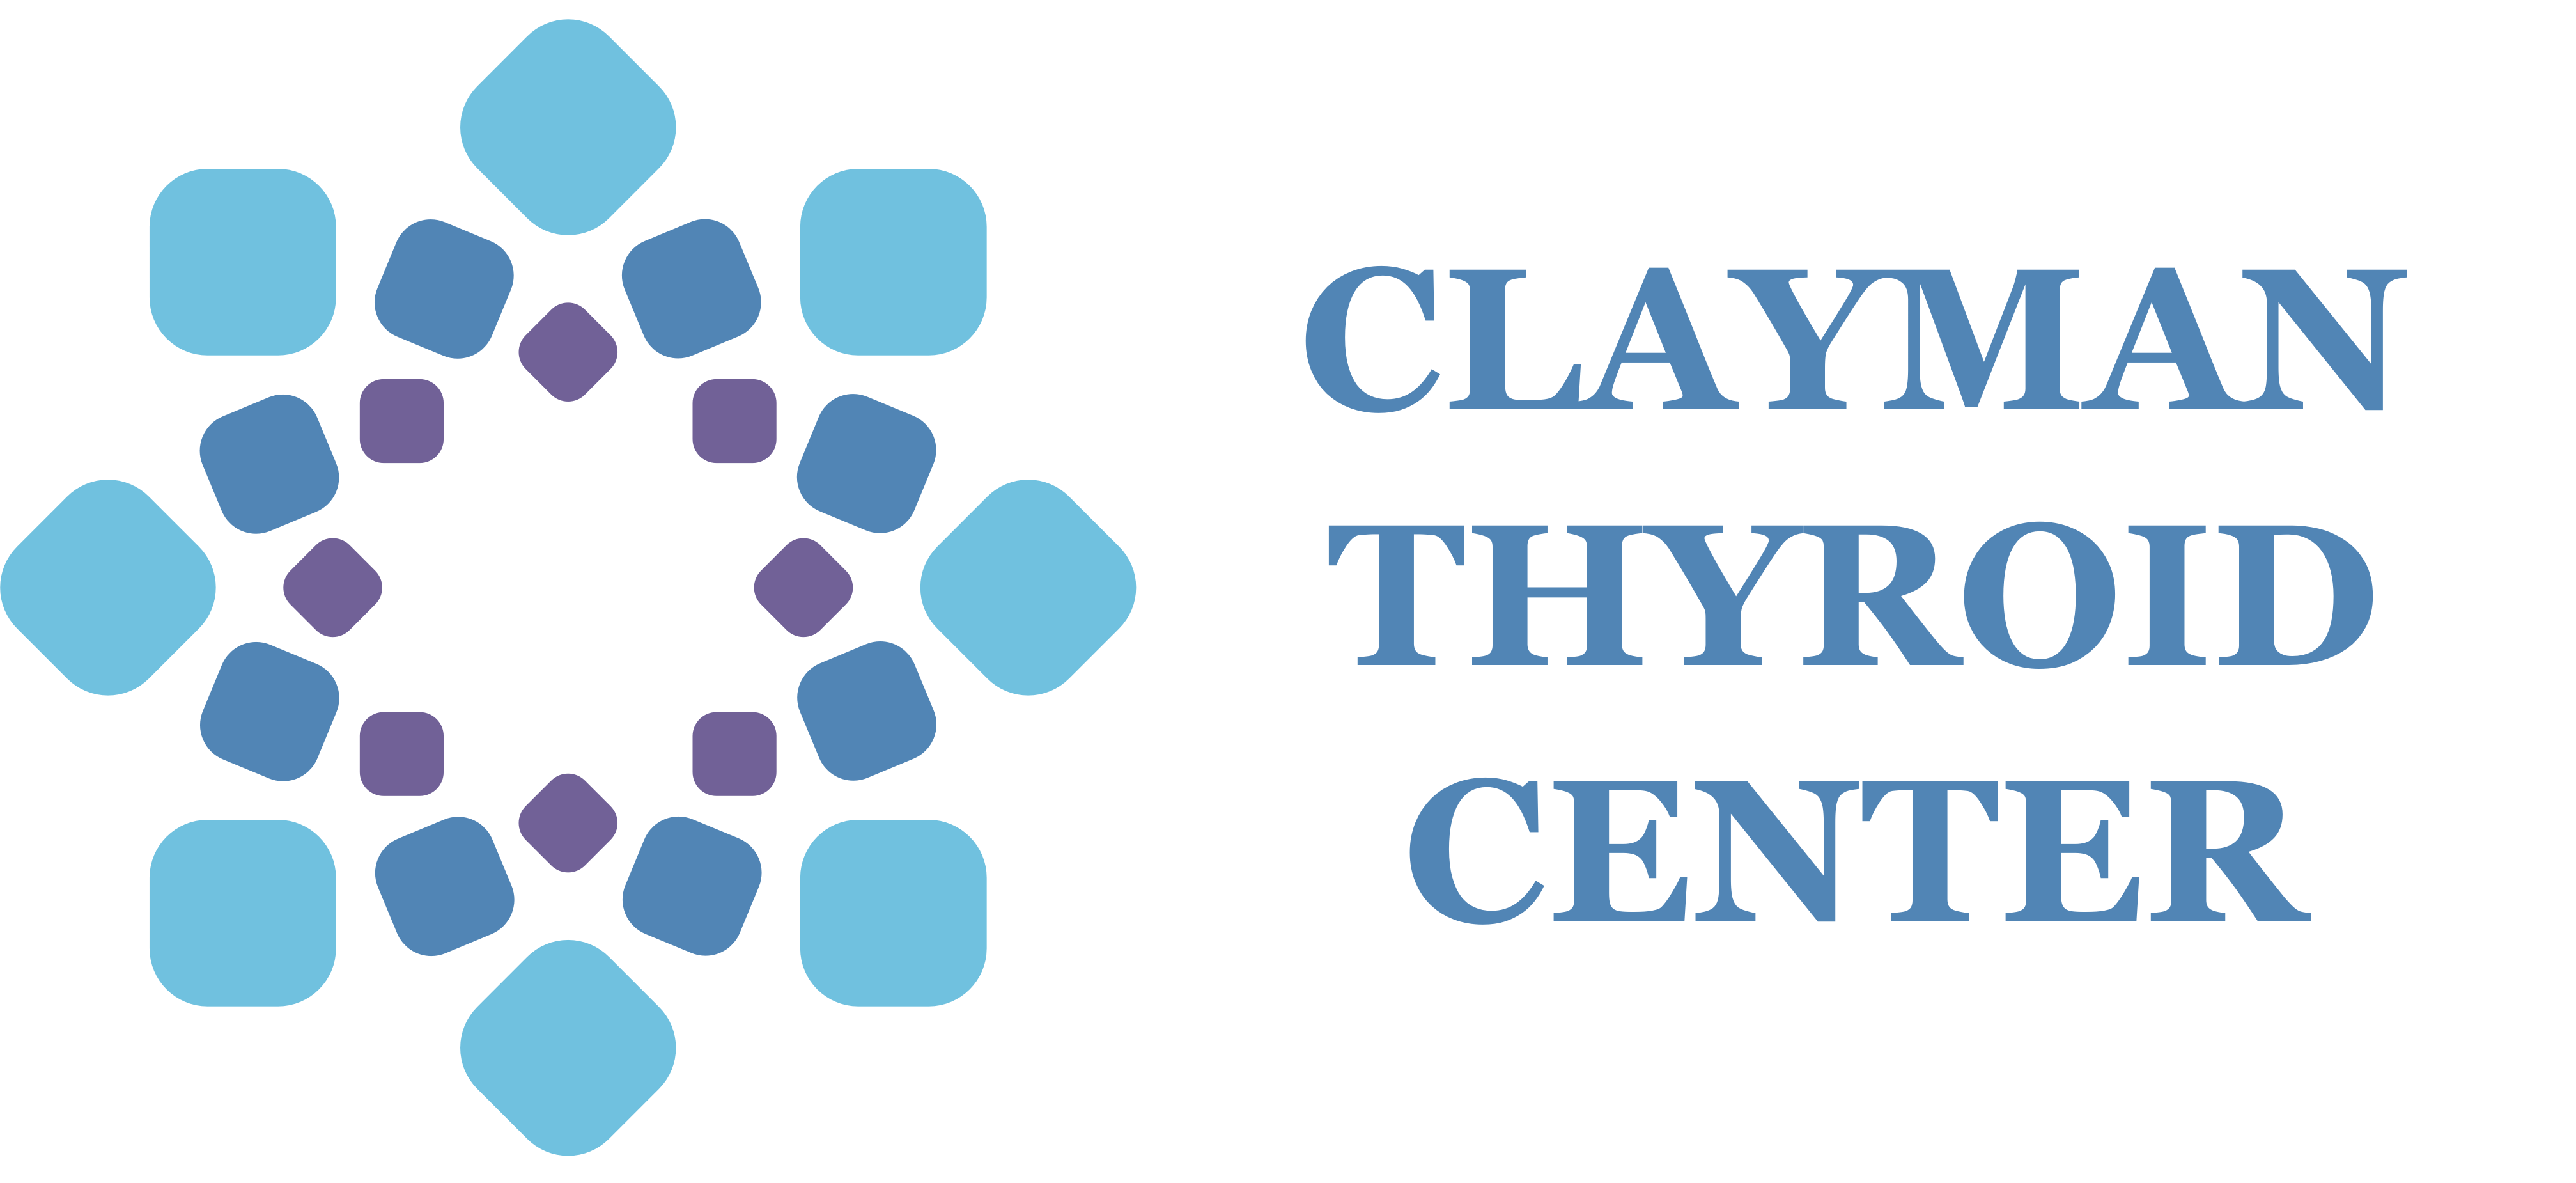 ThyroidCancerCenter.com is a comprehensive and easy to understand source for information on all thyroid disorders, with an emphasis on thyroid cancer and the diagnosis and treatment of thyroid cancer.